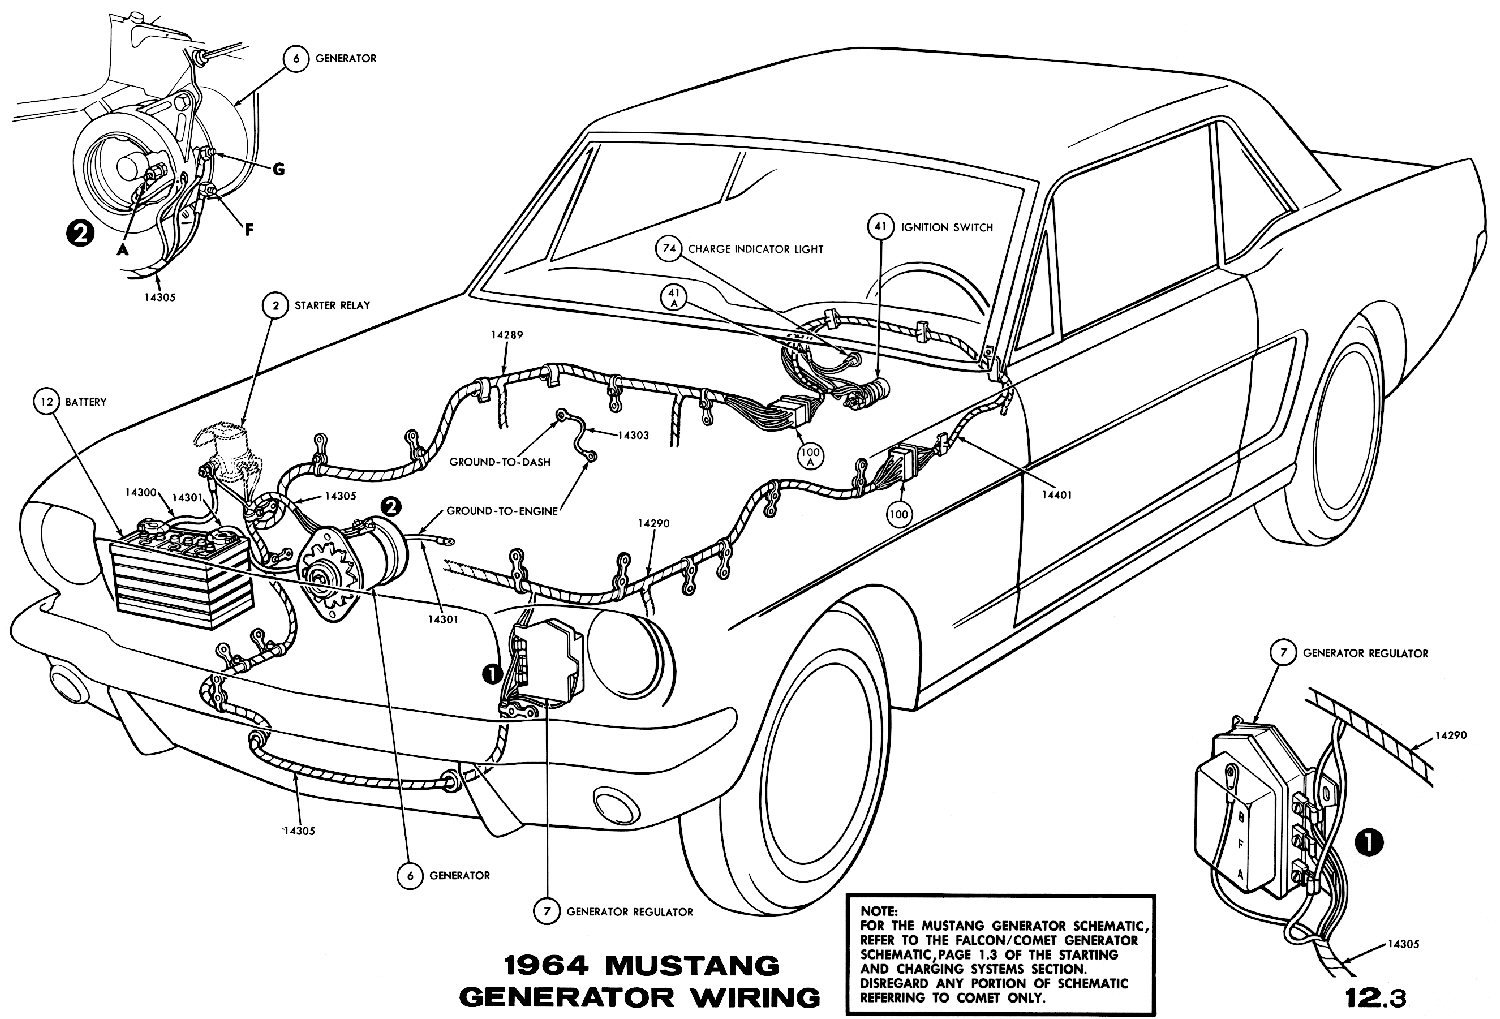 1964 Mustang Wiring Diagrams Average Joe Restoration 1968 Dash Cluster Diagram Sm1964f Generator Pictorial Or Schematic